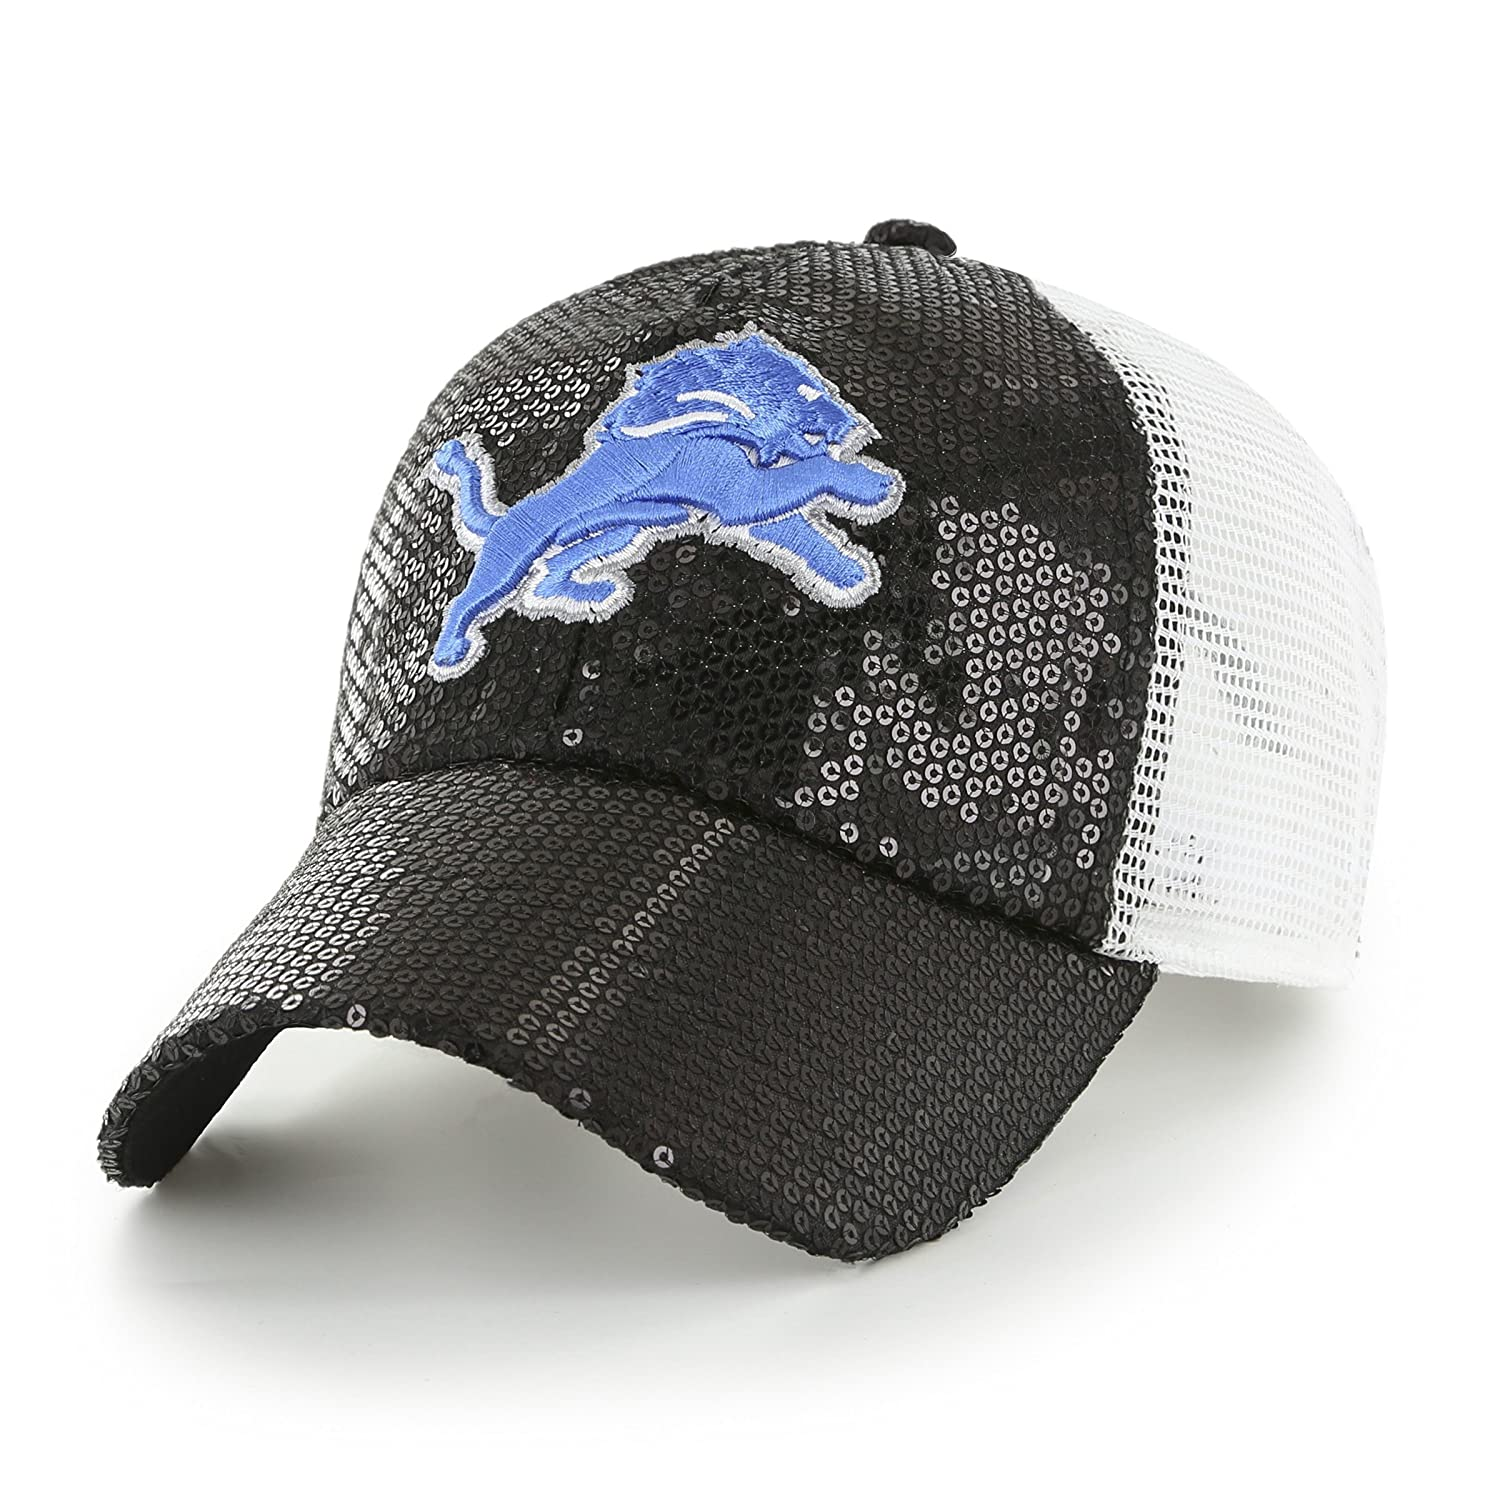 OTS NFL Adult Women's Brilliance Challenger Adjustable Hat Women' s Red OTSBO Old Time Sports Booking